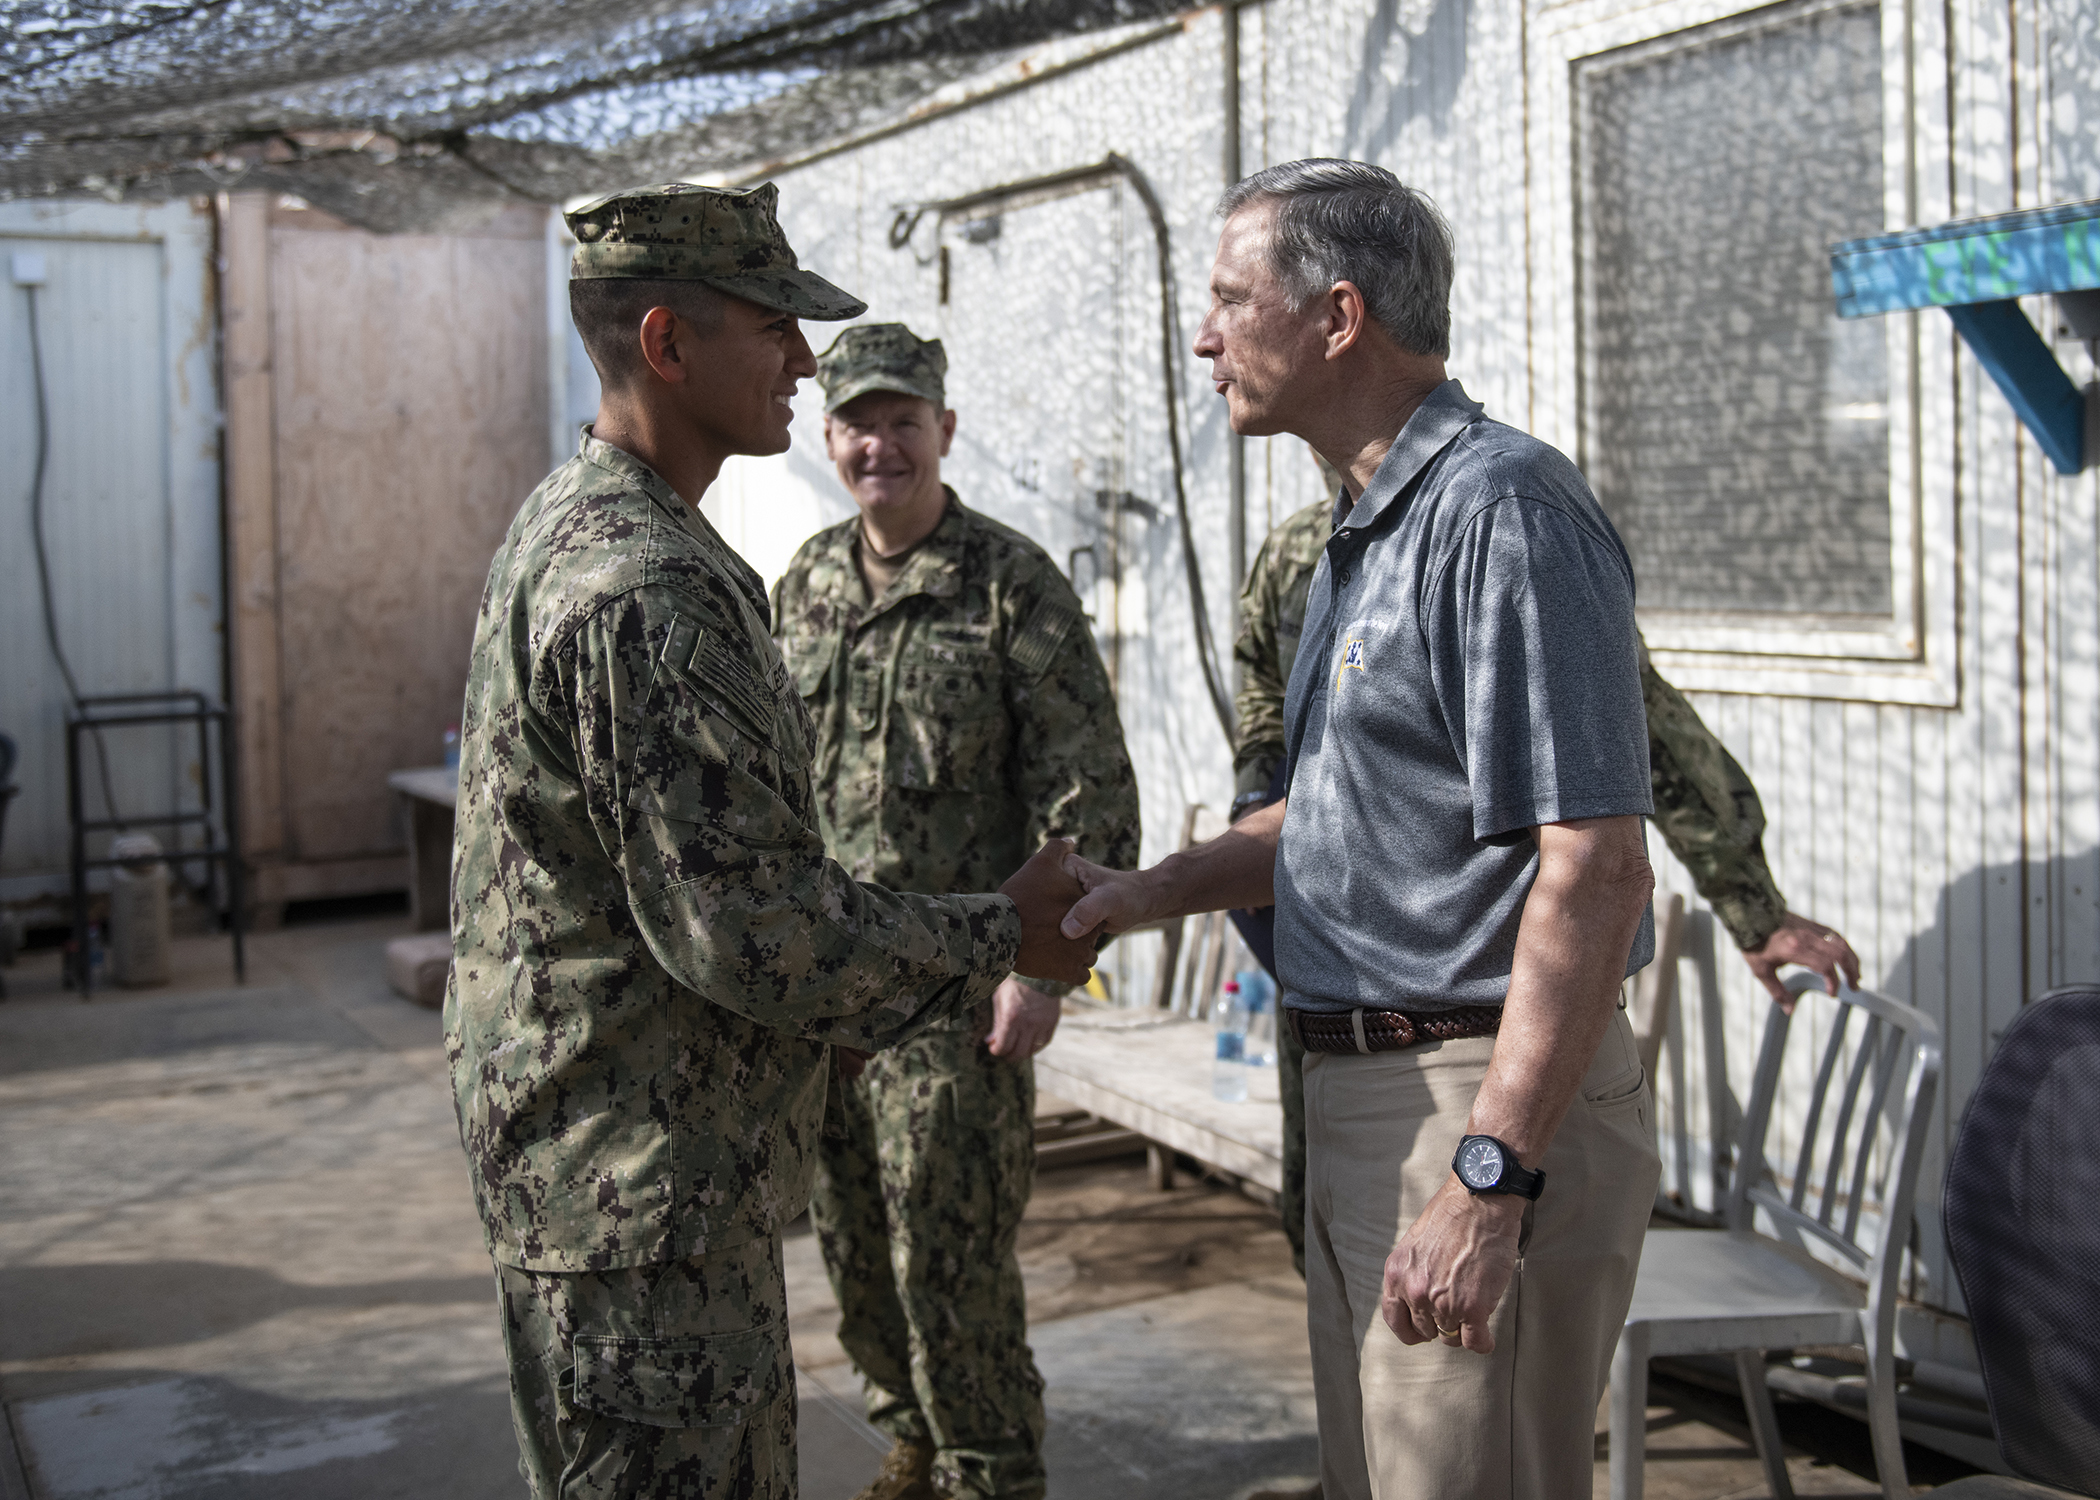 Assistant Secretary of the Navy (Manpower and Reserve Affairs), retired U.S. Navy Rear Adm. Gregory J. Slavonic presents a coin to U.S. Navy Petty Officer 2nd Class Jonathan Lester, from Naval Mobile Construction Battalion 1, assigned to Combined Joint Task Force - Horn of Africa, while visiting Camp Lemonnier, Djibouti, Feb. 3, 2019. Slavonic visited as part of a tour of Reserve units to answer questions, discuss leadership initiatives and interact with local Sailors. (U.S. Air Force photo by Tech. Sgt. Shawn Nickel)